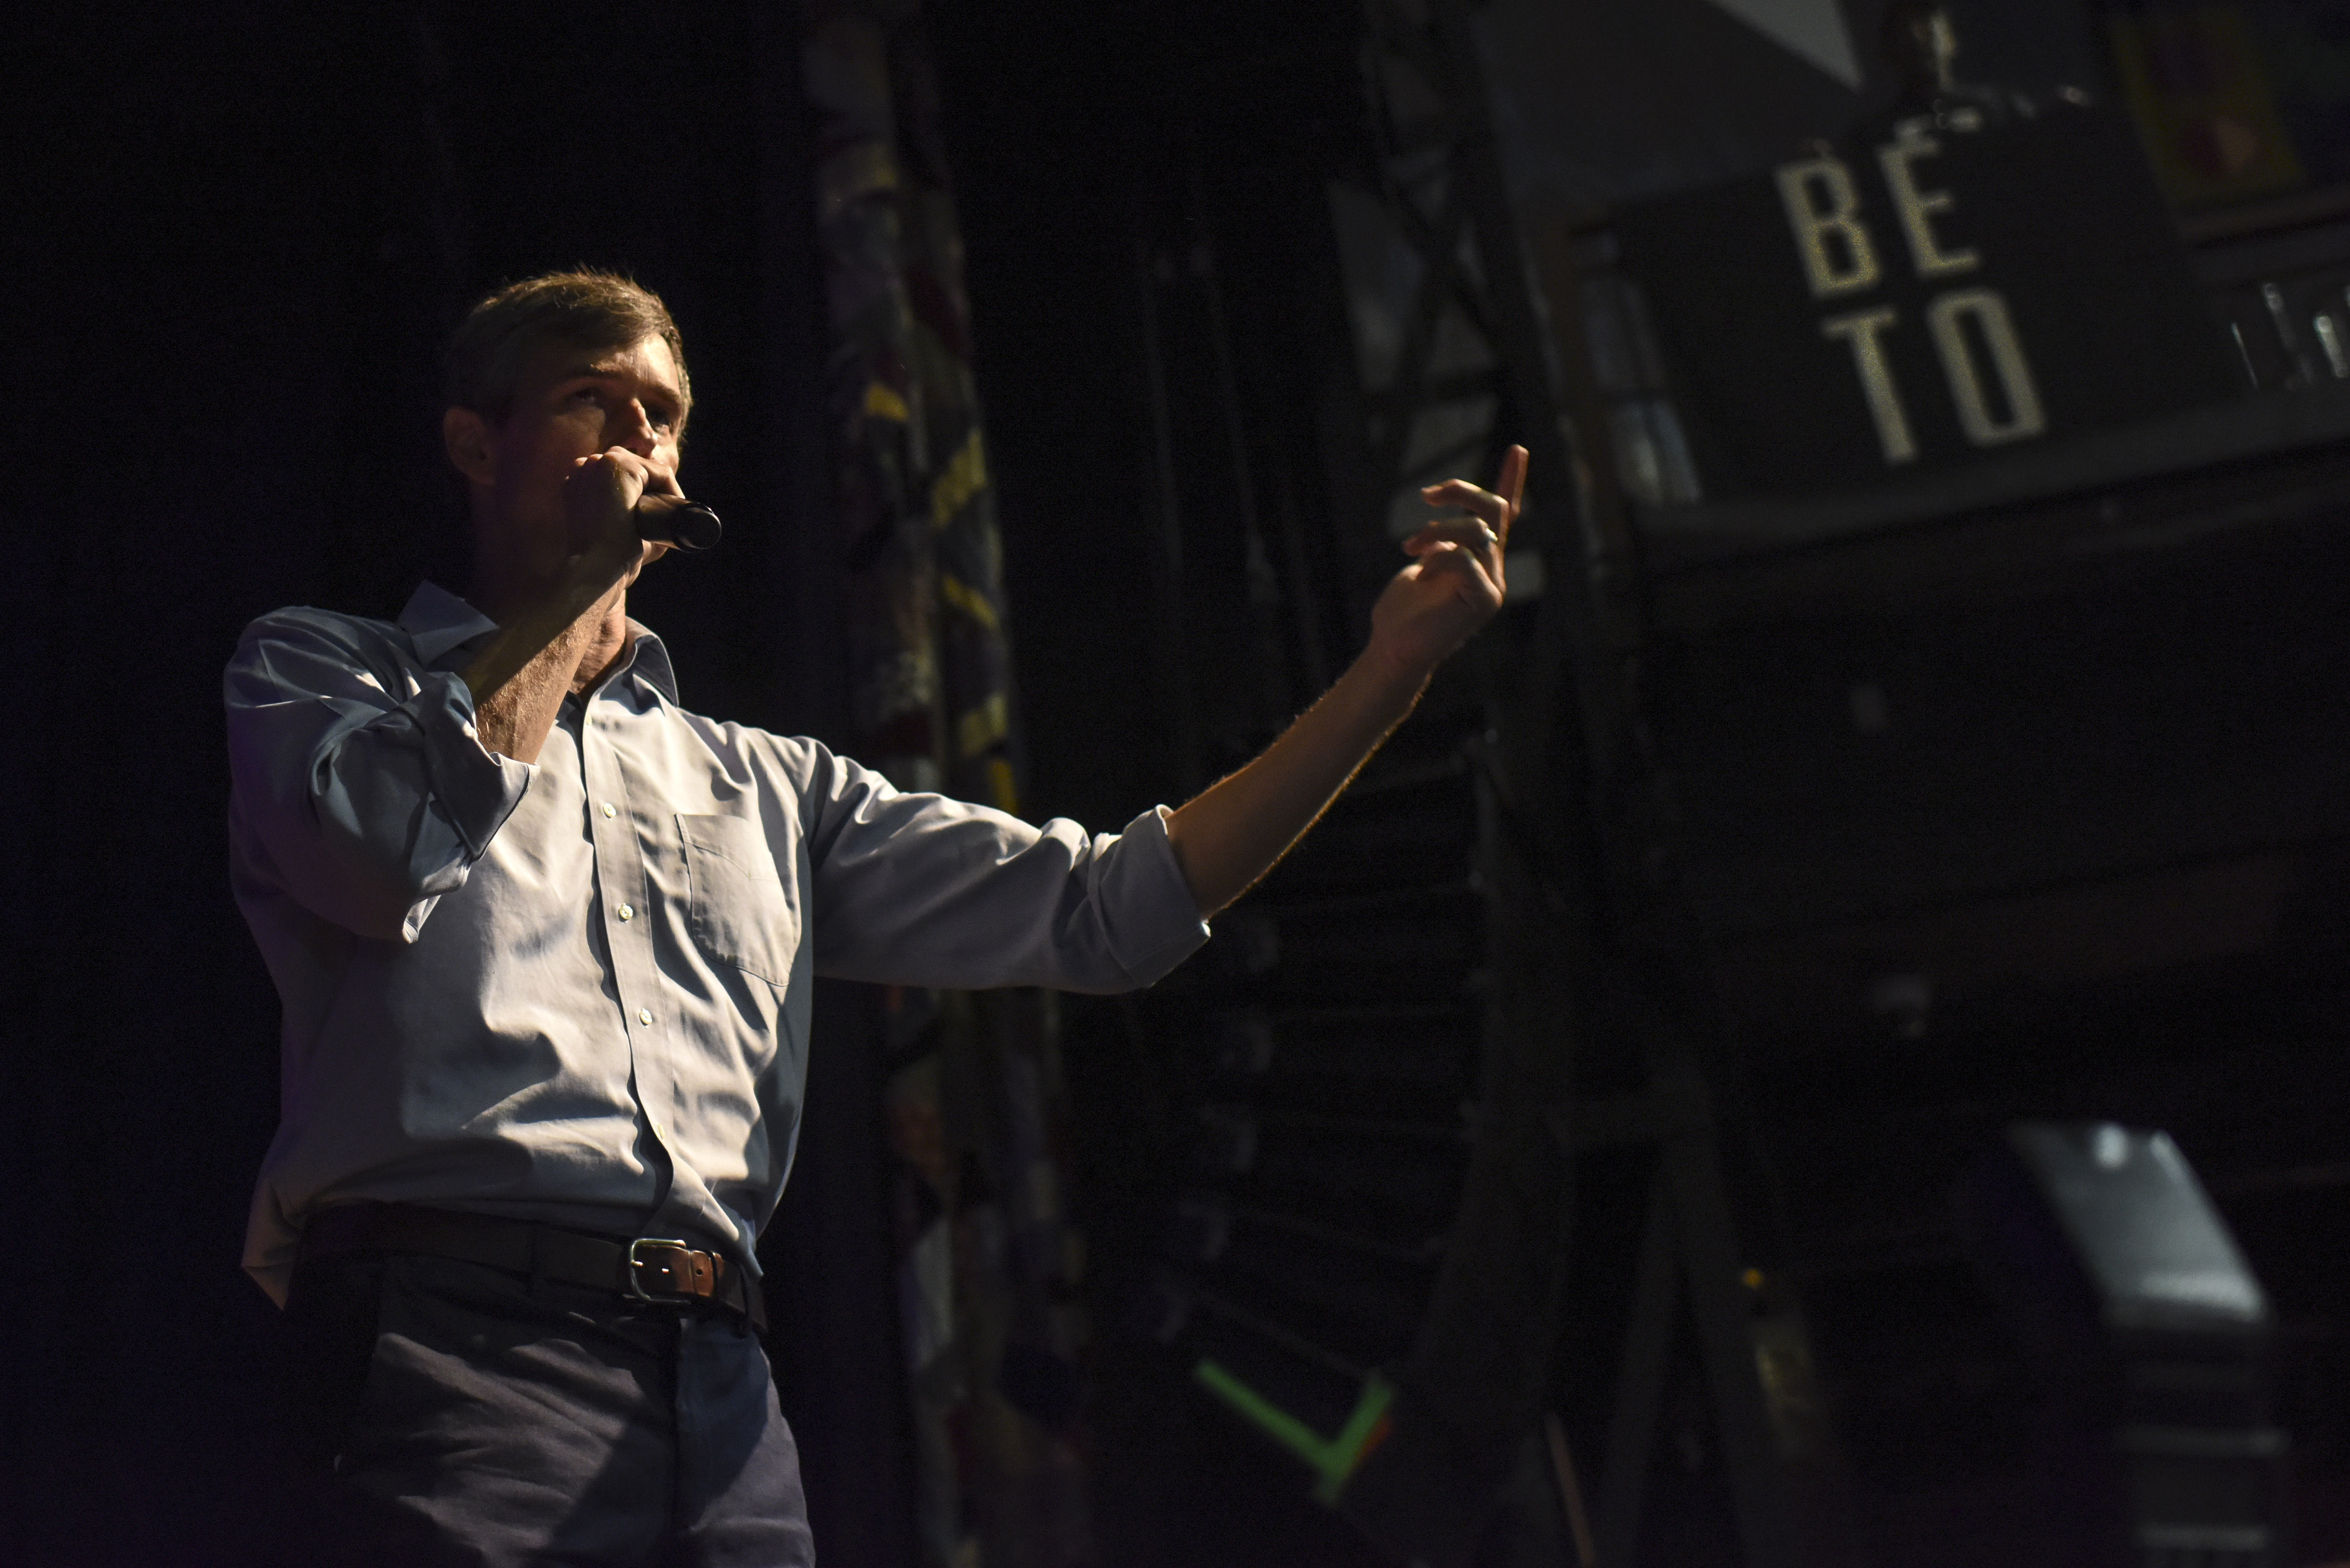 Beto O'Rourke, in jeans and shirt sleeves, is wardrobed like disrupter.